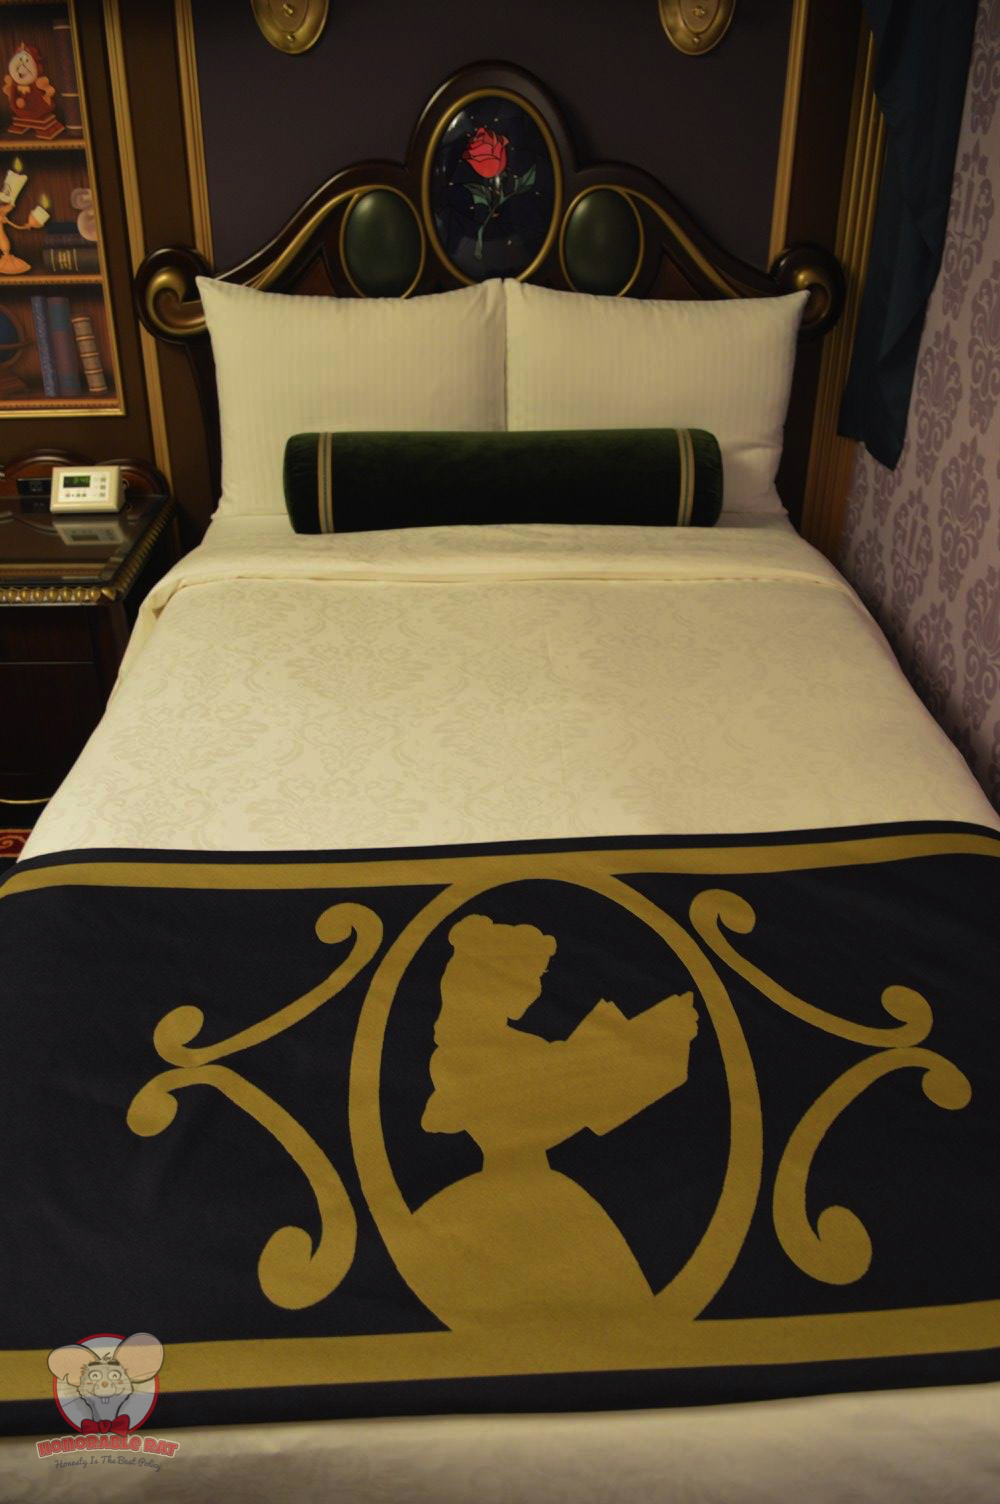 A comfortable bed fit for a King, or should I say Beast